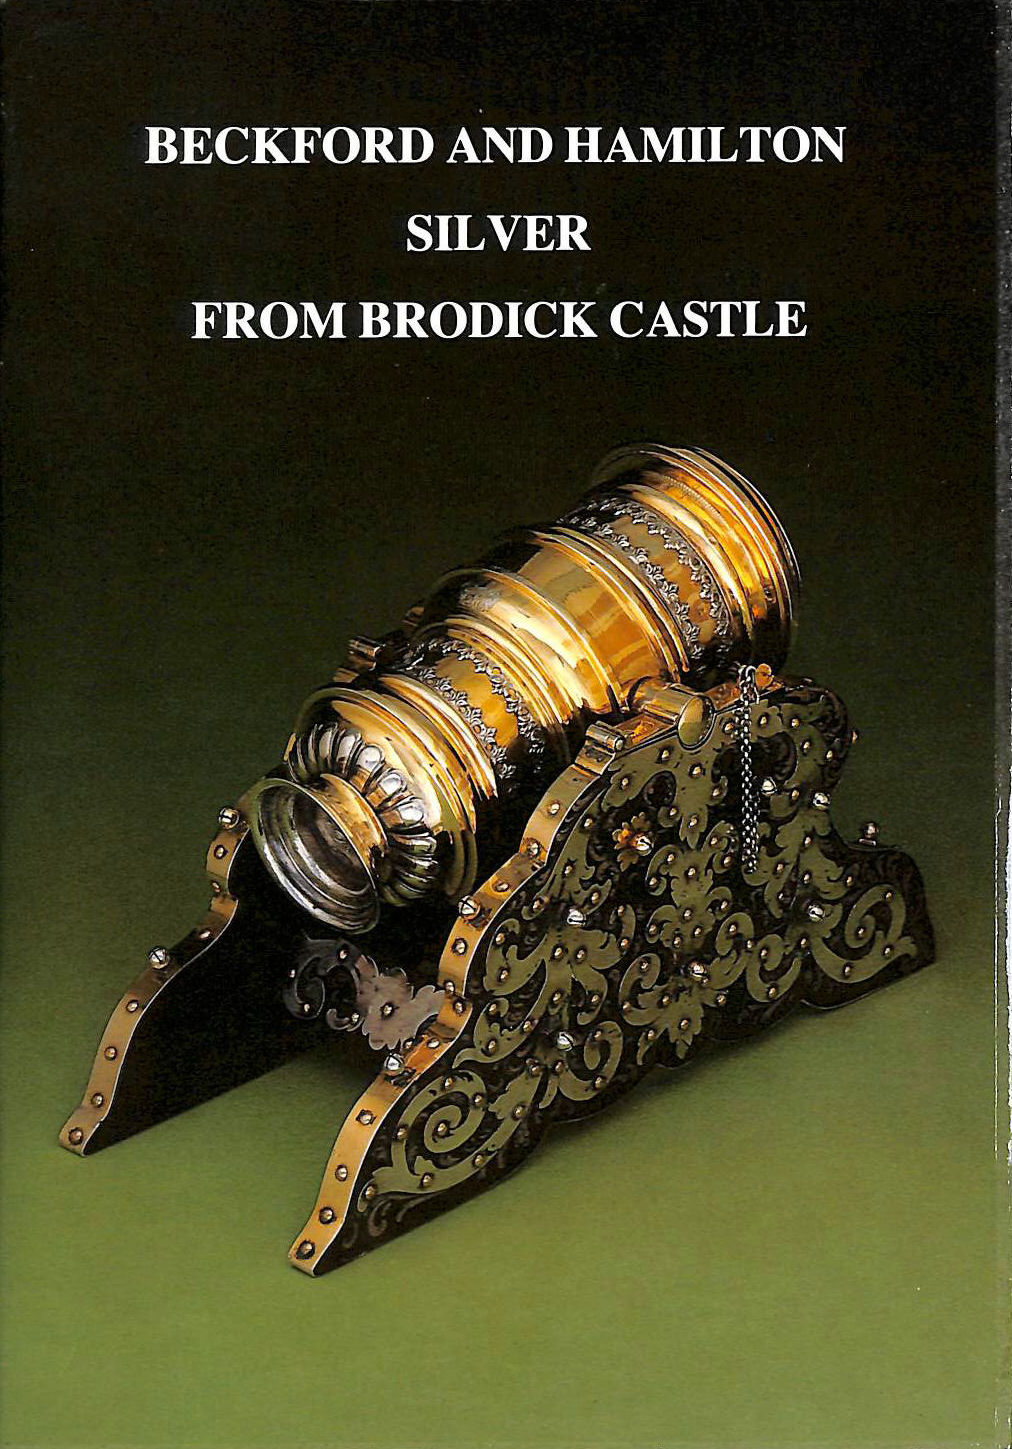 Image for Beckford and Hamilton Silver from Brodick Castle - An Exhibition arranged by the National Trust for Scotland